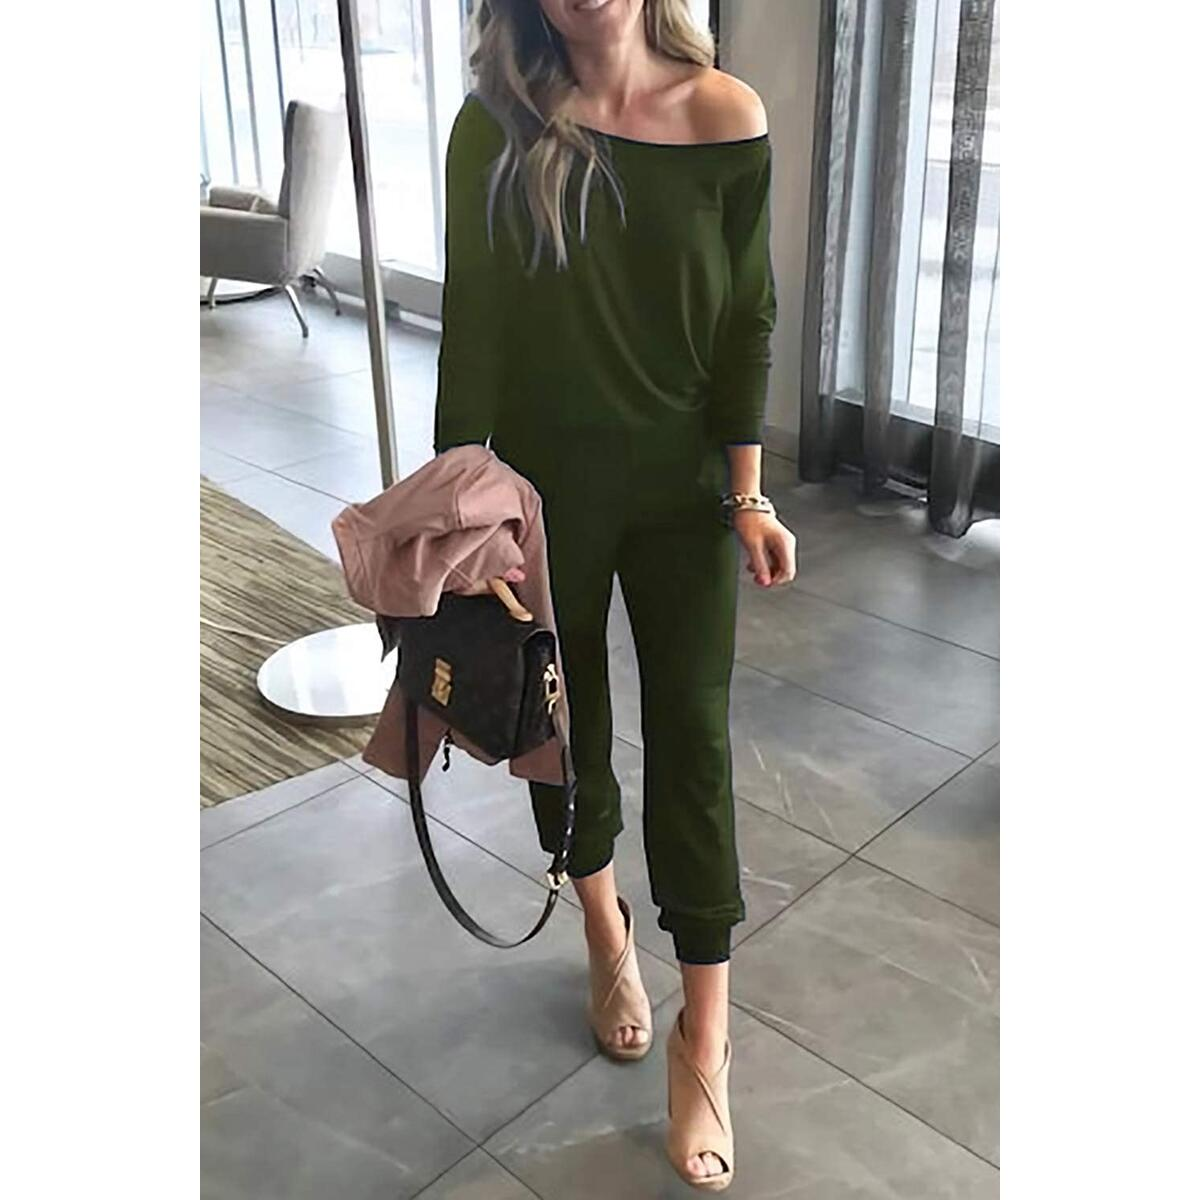 Alelly Women's Off Shoulder 3/4 Sleeve Elastic Waist Beam Foot Jumpsuit Rompers ONLY GREEN